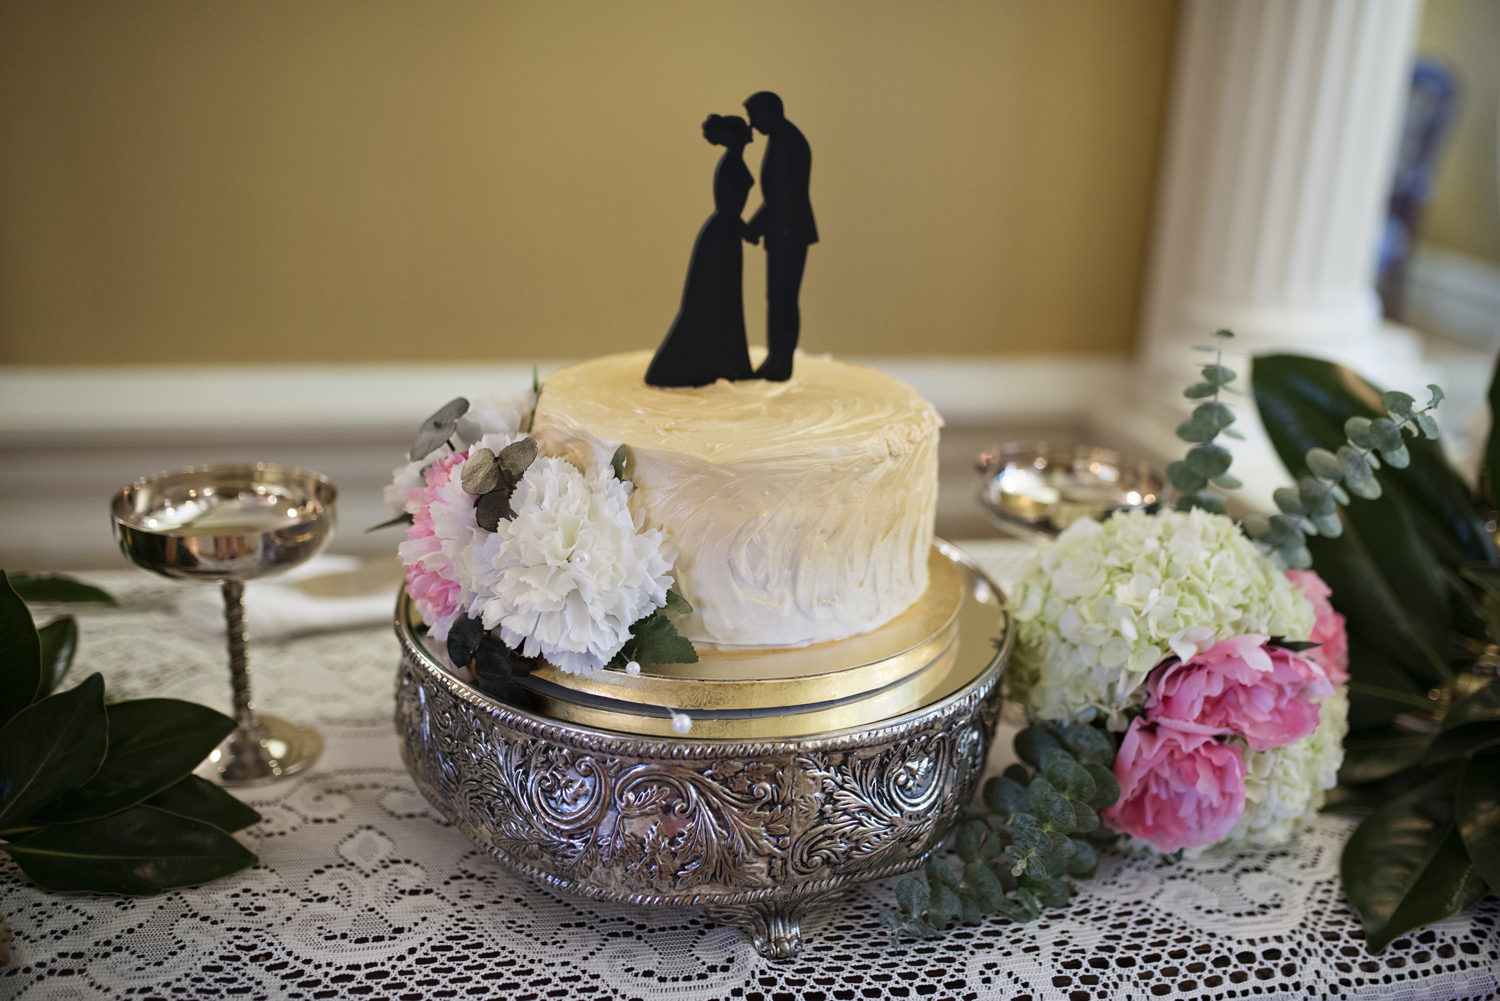 A wedding cake for two with a silhouette topper